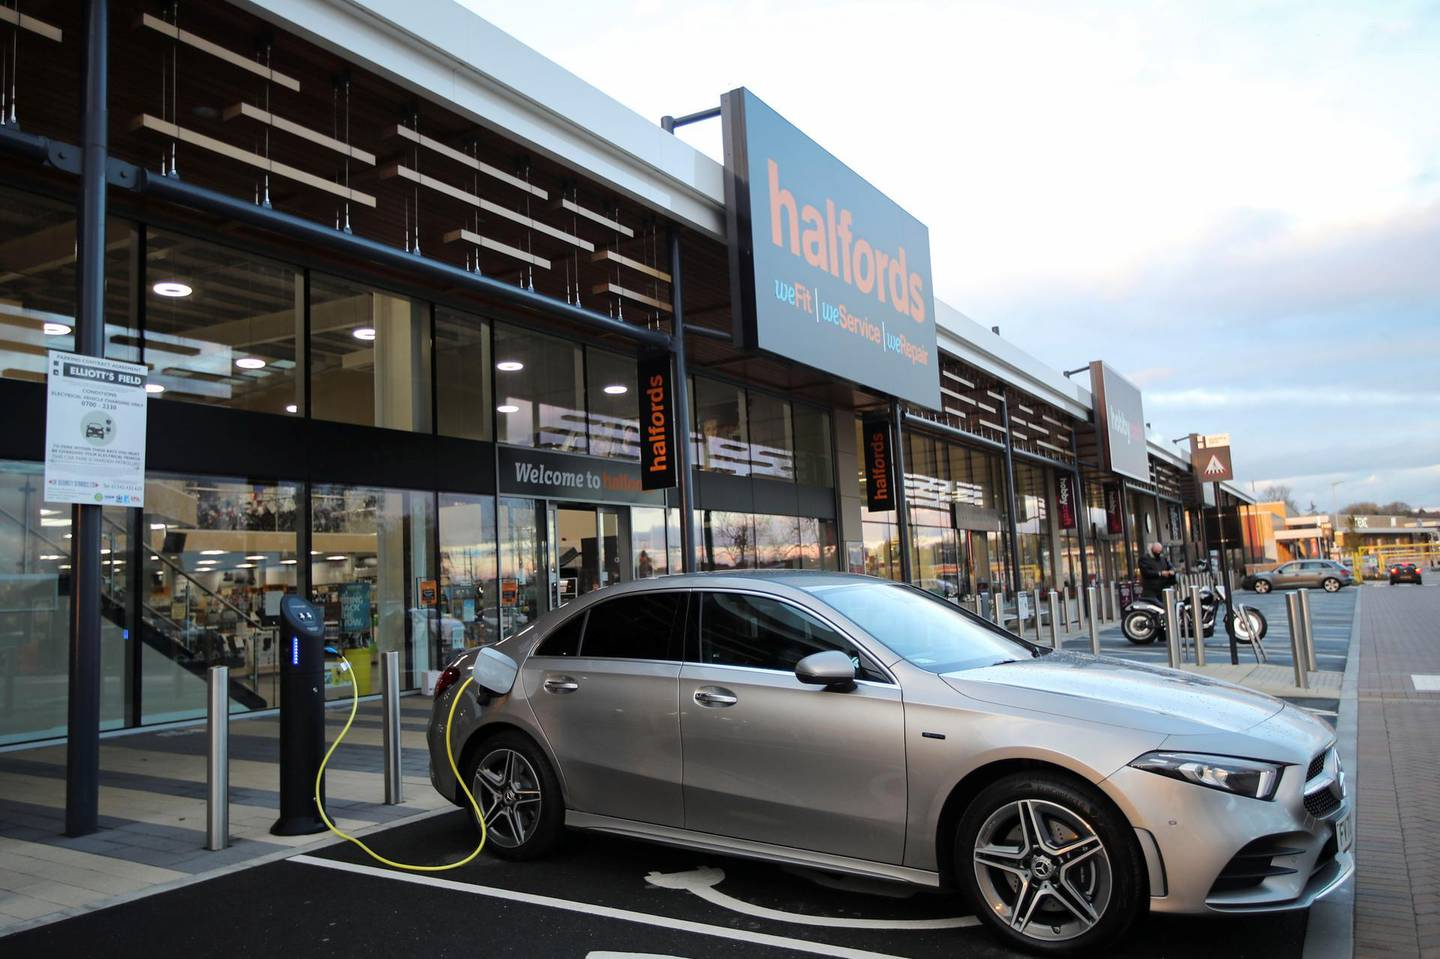 An electric car is seen at a charging point at Halfords in Rugby, Britain, November 19, 2020. REUTERS/Molly Darlington